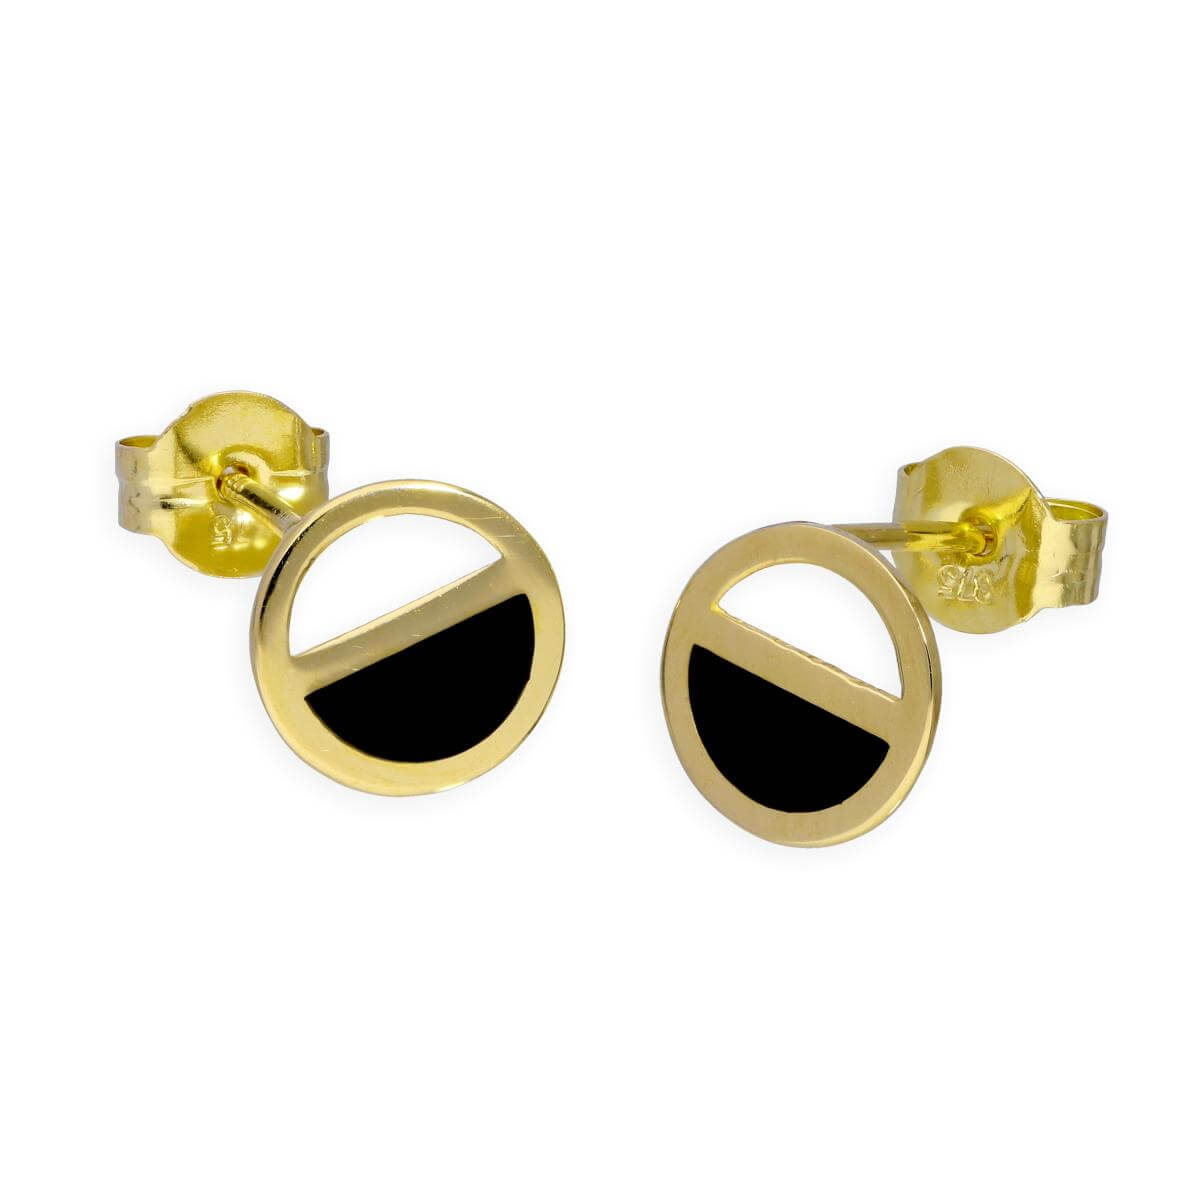 9ct Gold & Black Enamel Two Tone Circle Stud Earrings